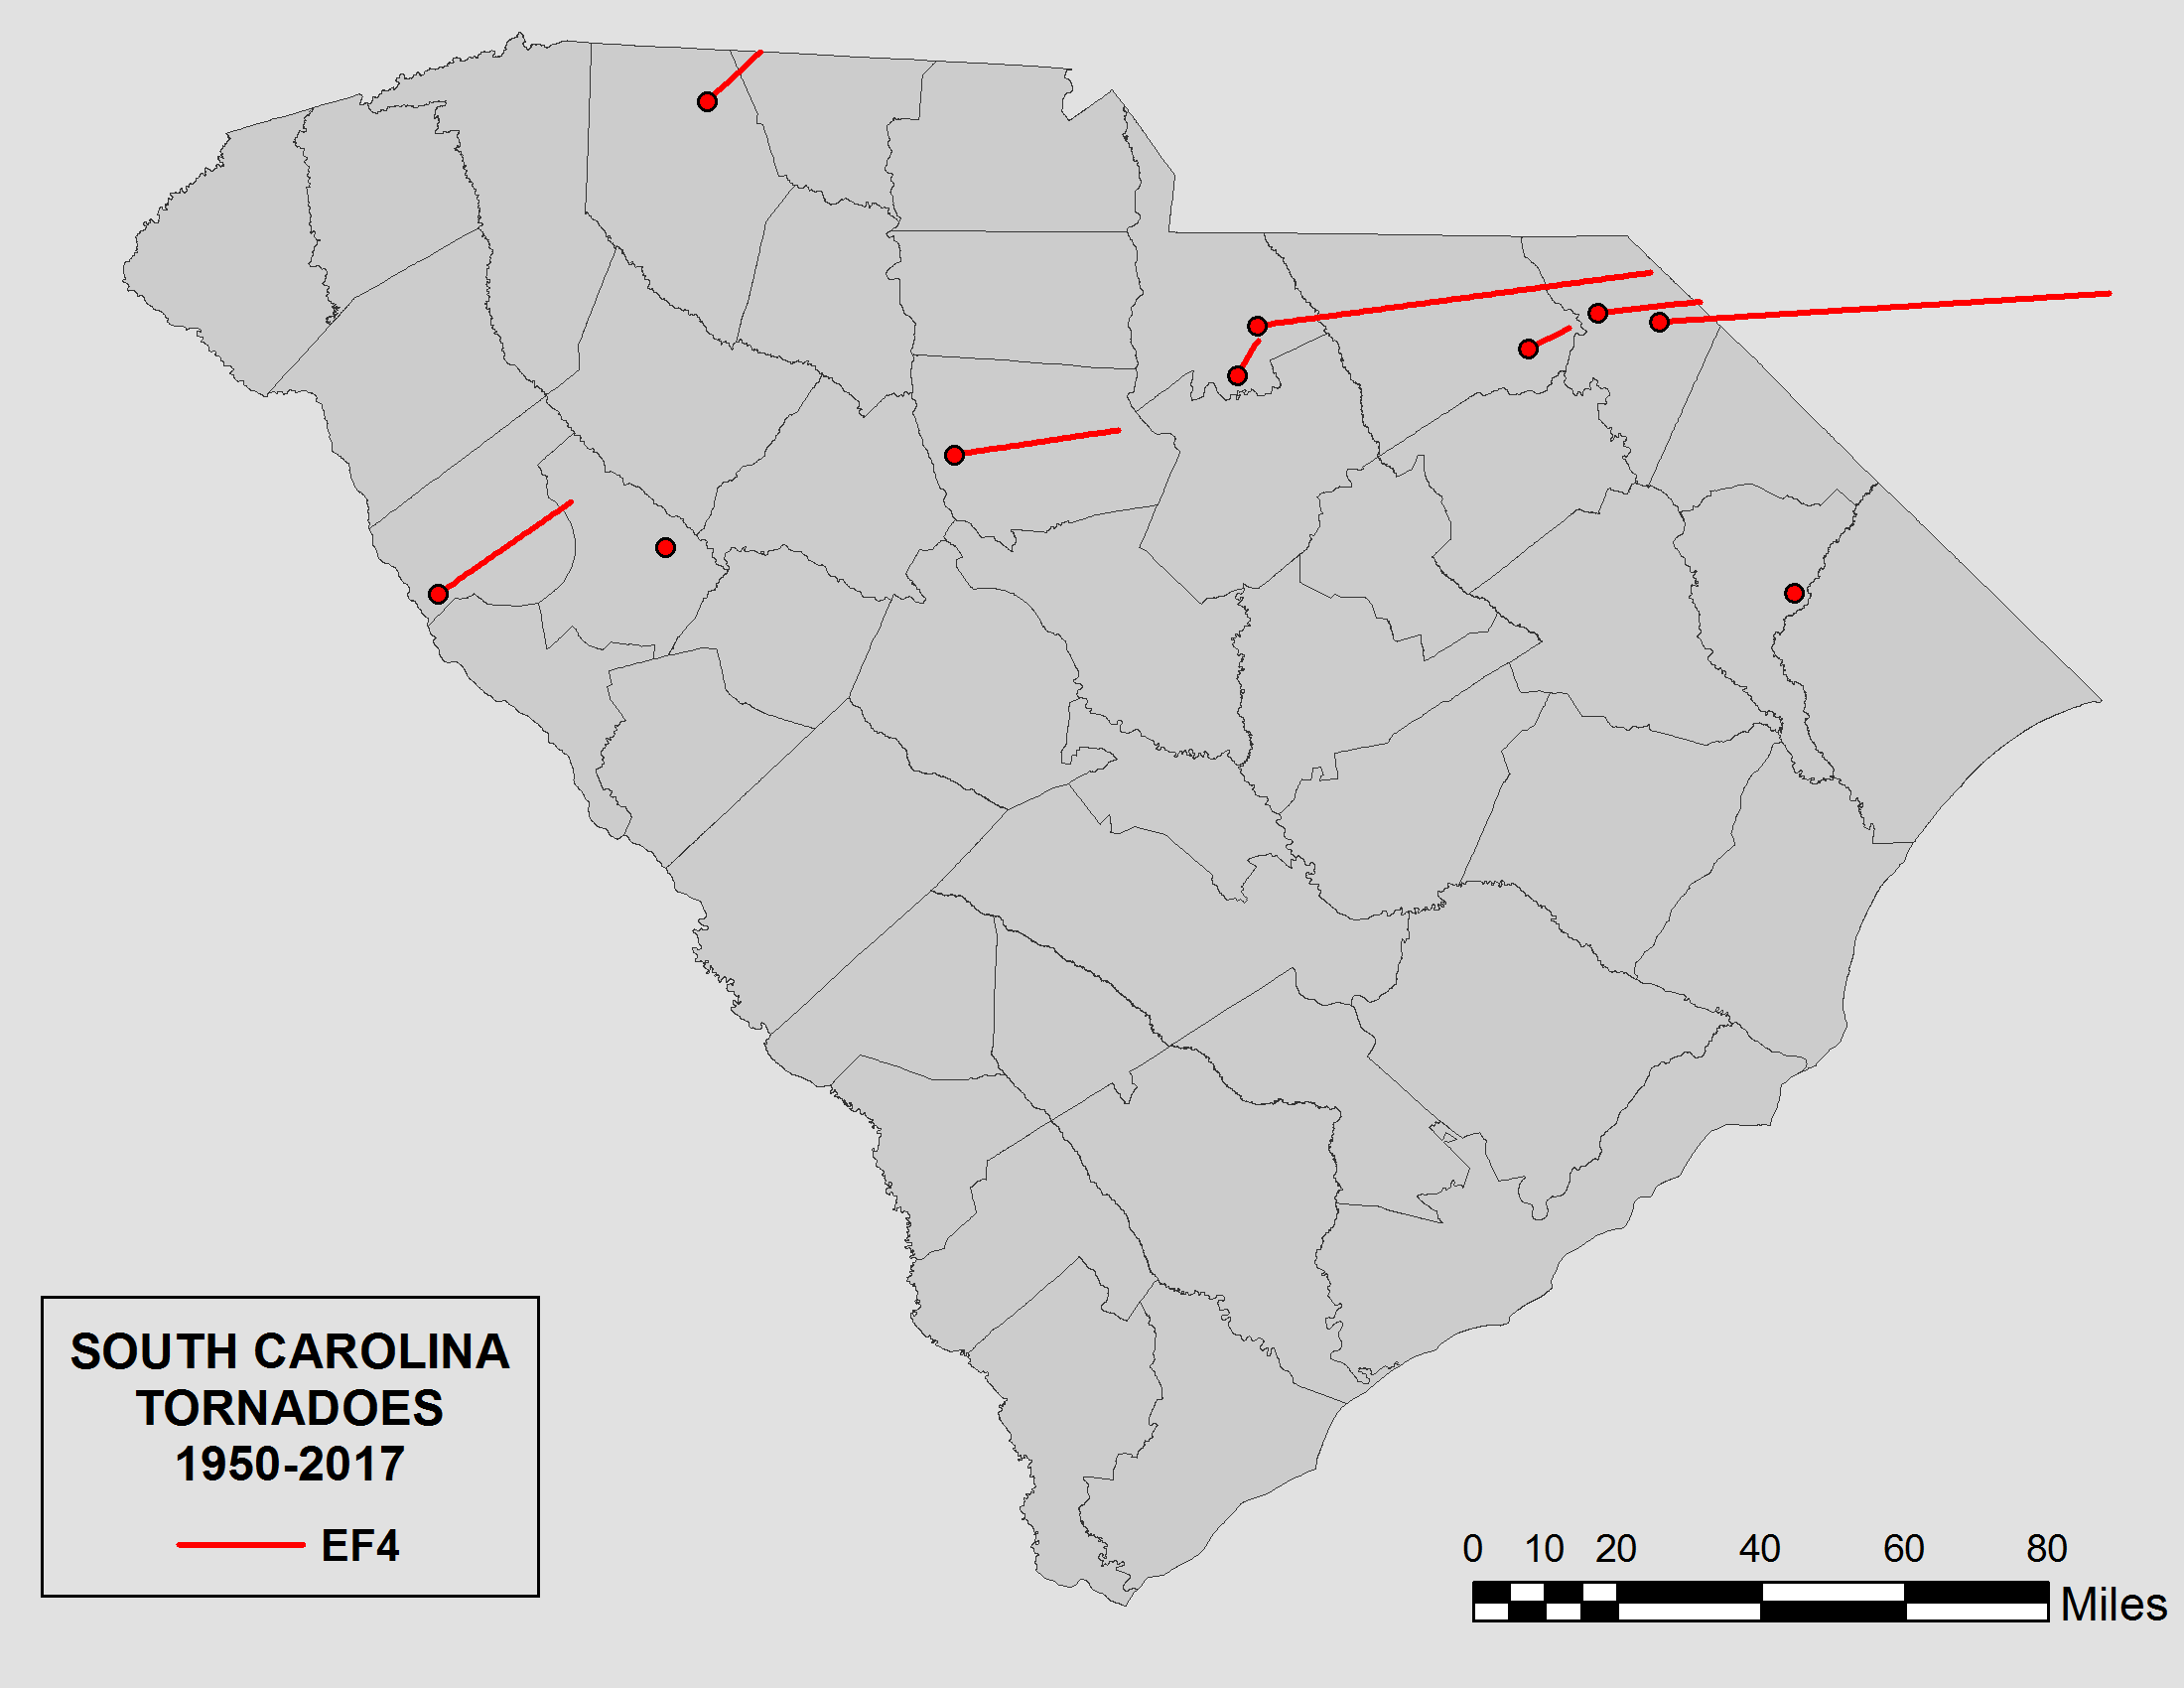 South Carolina State Climatology Office Wiring Meter Diagram Appalachian Power Figure 5 Shows The Distribution Of All Tornado Touchdowns Across And Tracks Longer Lived Tornadoes Figures 5a E Map Separate Ef0 Ef1